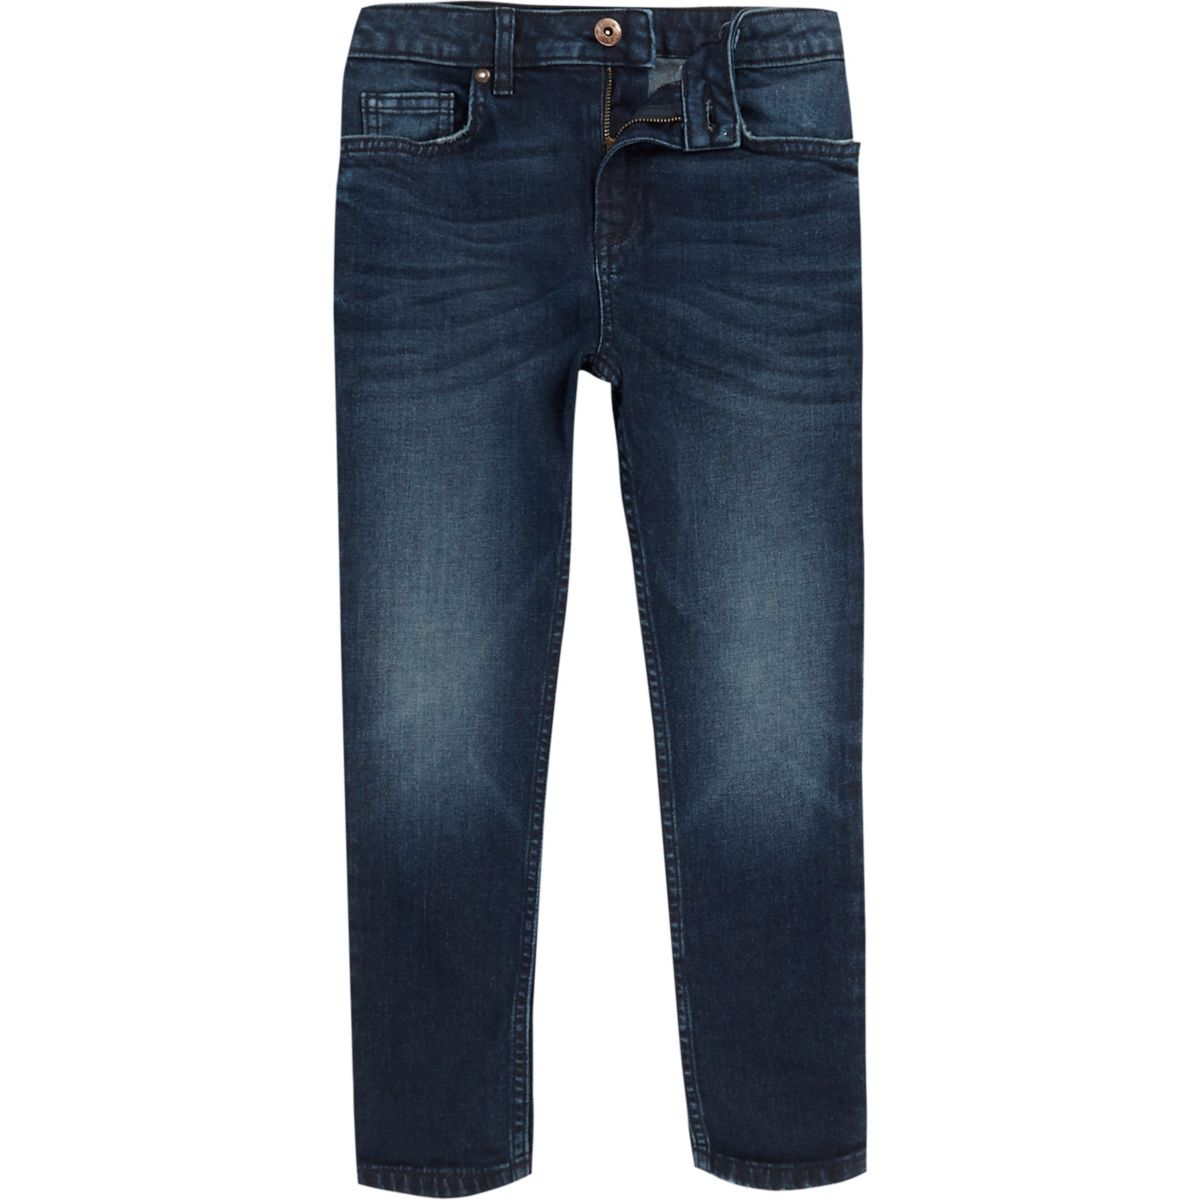 Shop boys skinny jeans at Neiman Marcus, where you will find free shipping on the latest in fashion from top designers.